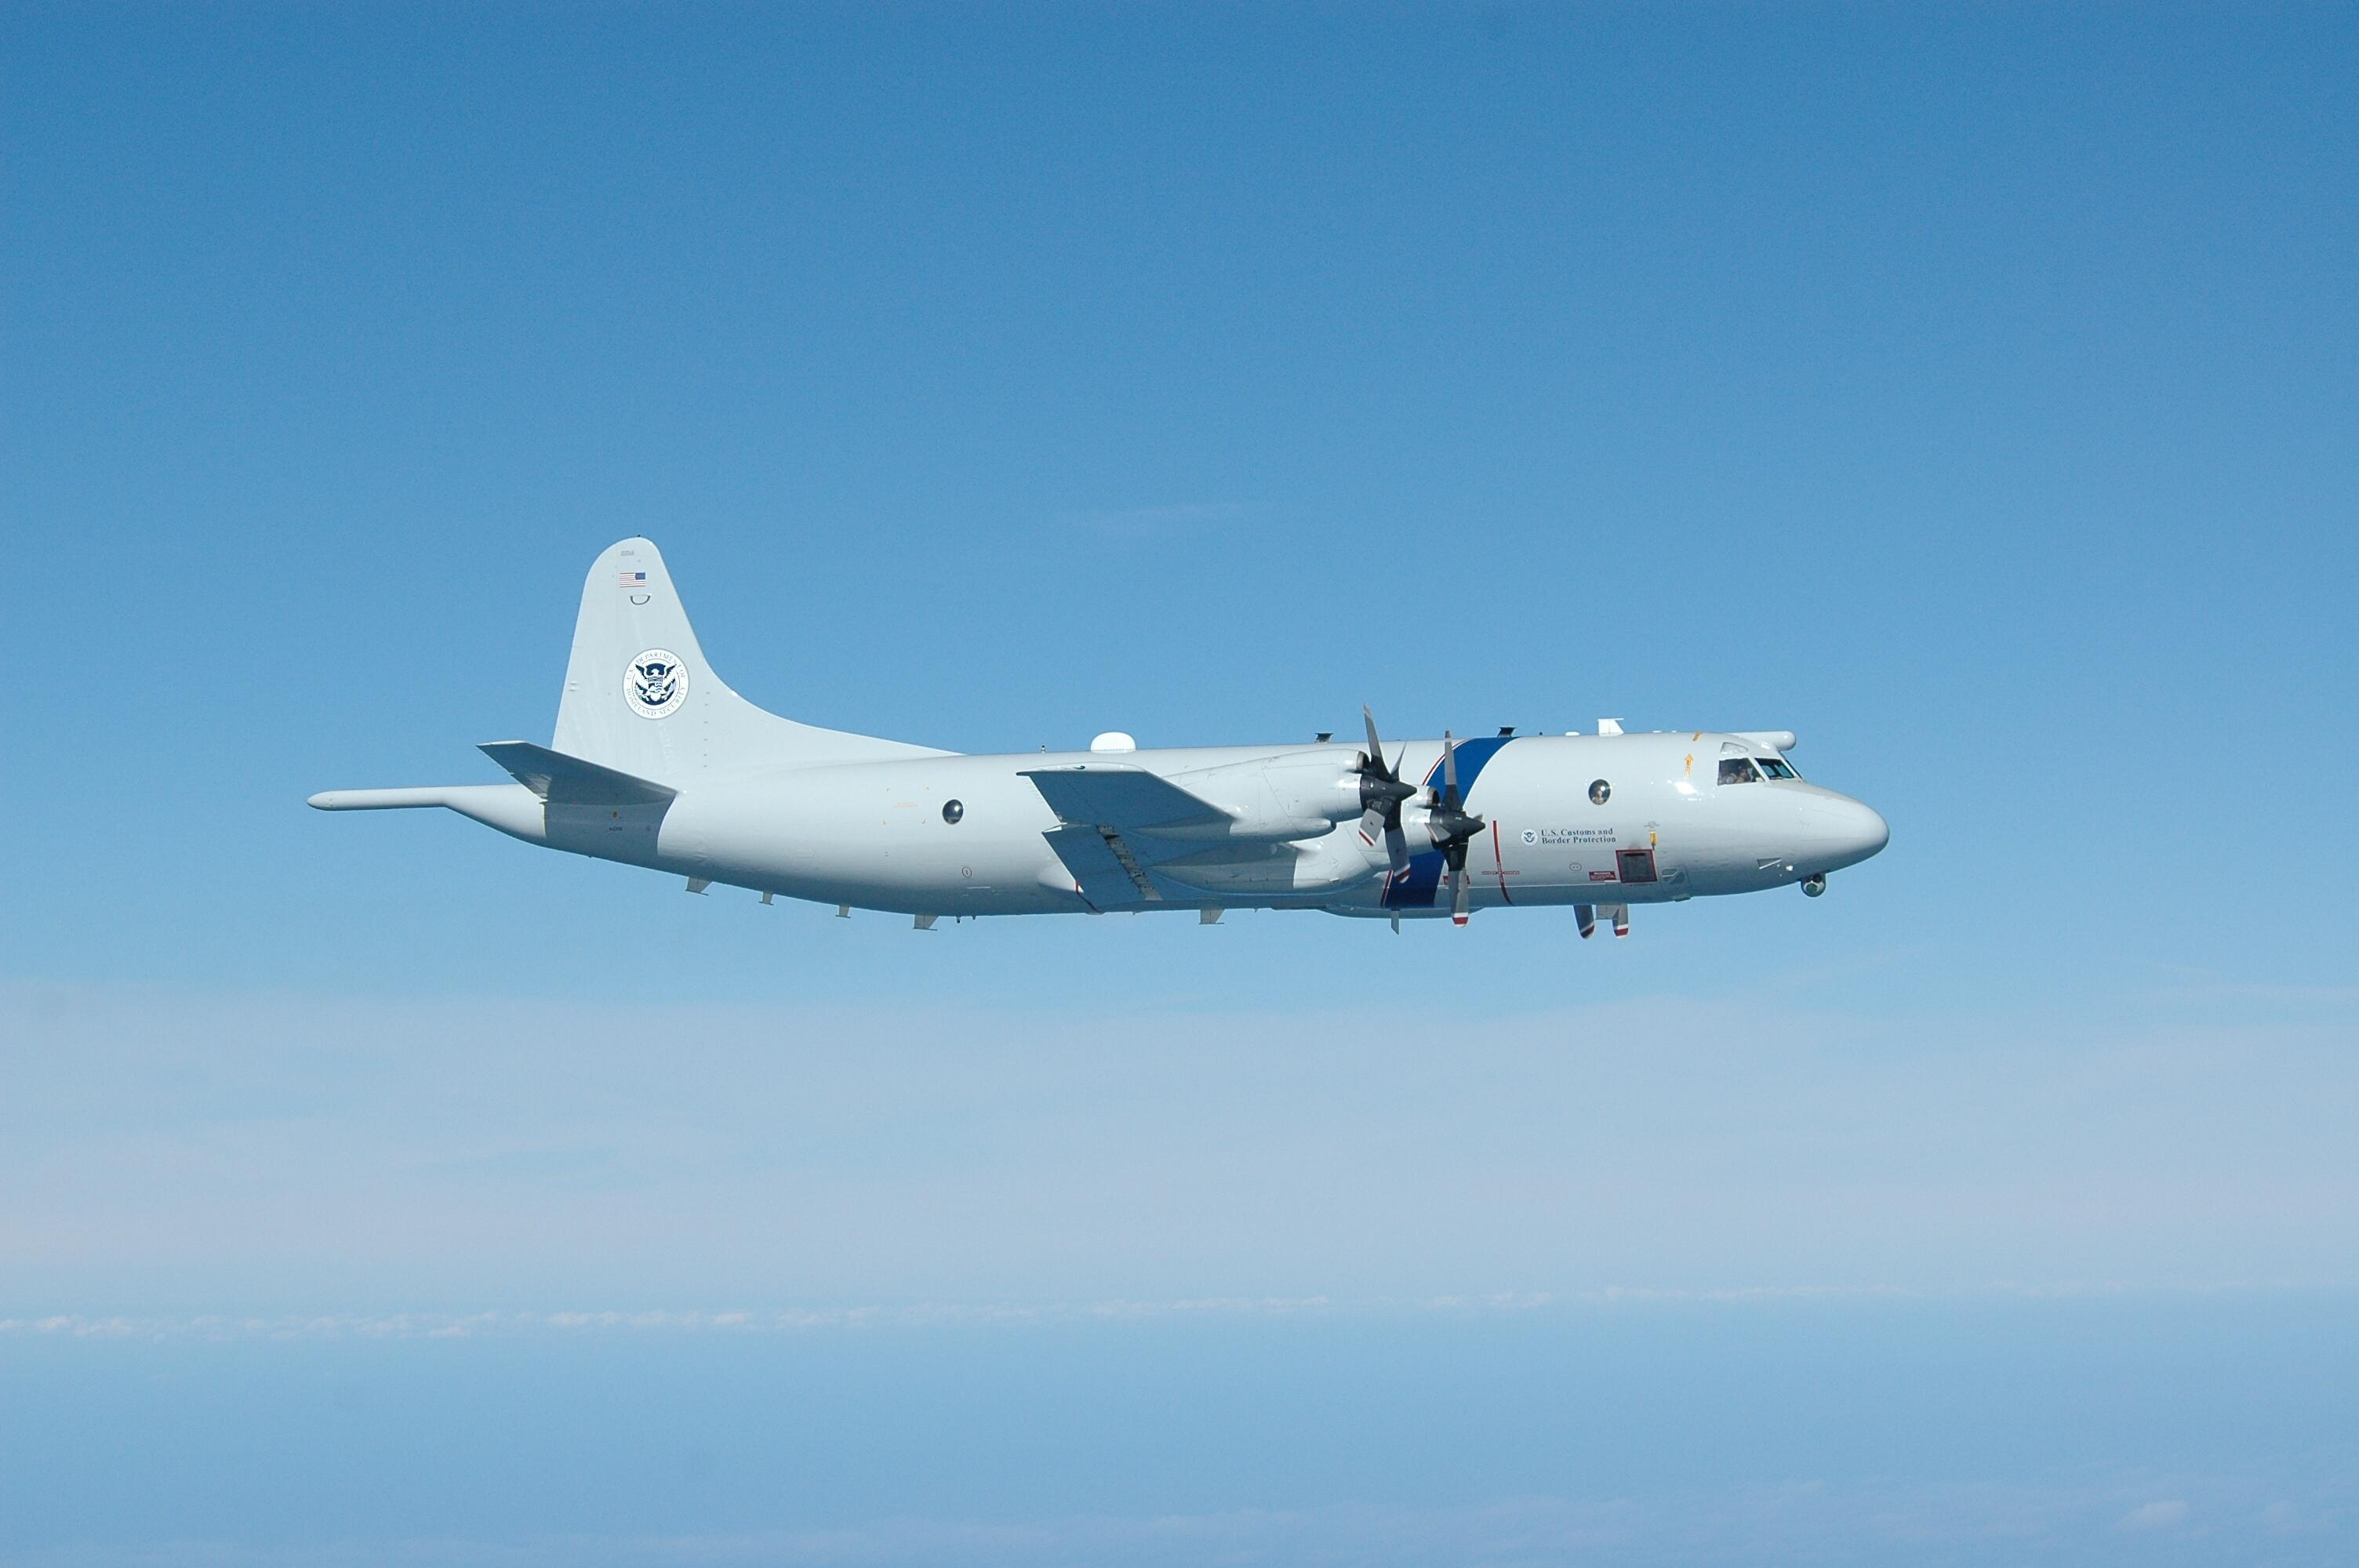 The P-3 Long Range Tracker Aircraft detects and tracks multiple targets and the accompanying aircraft intercepts, identifies and tracks those suspect targets.